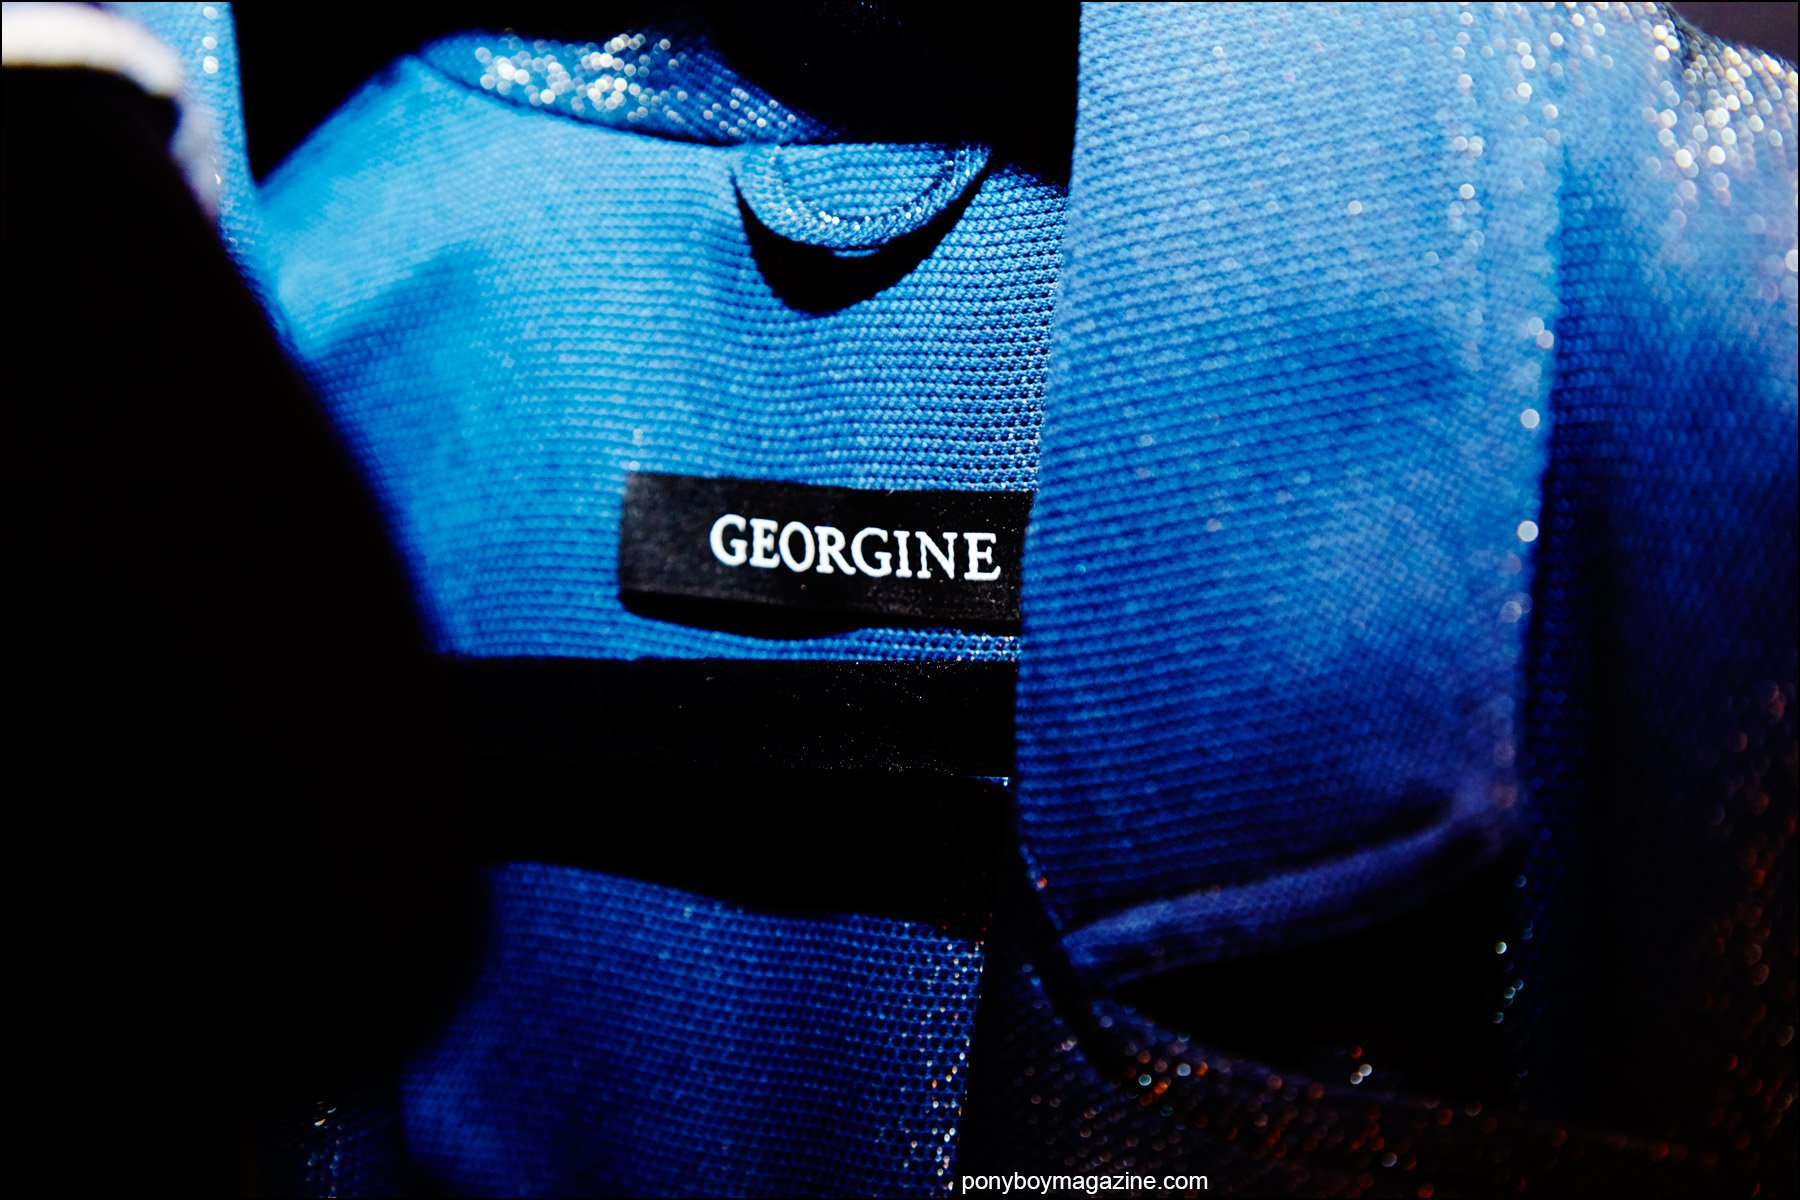 Detail shot of a label on a Georgine jacket, photographed backstage at the Spring/Summer 2016 collection by Alexander Thompson for Ponyboy magazine NY.